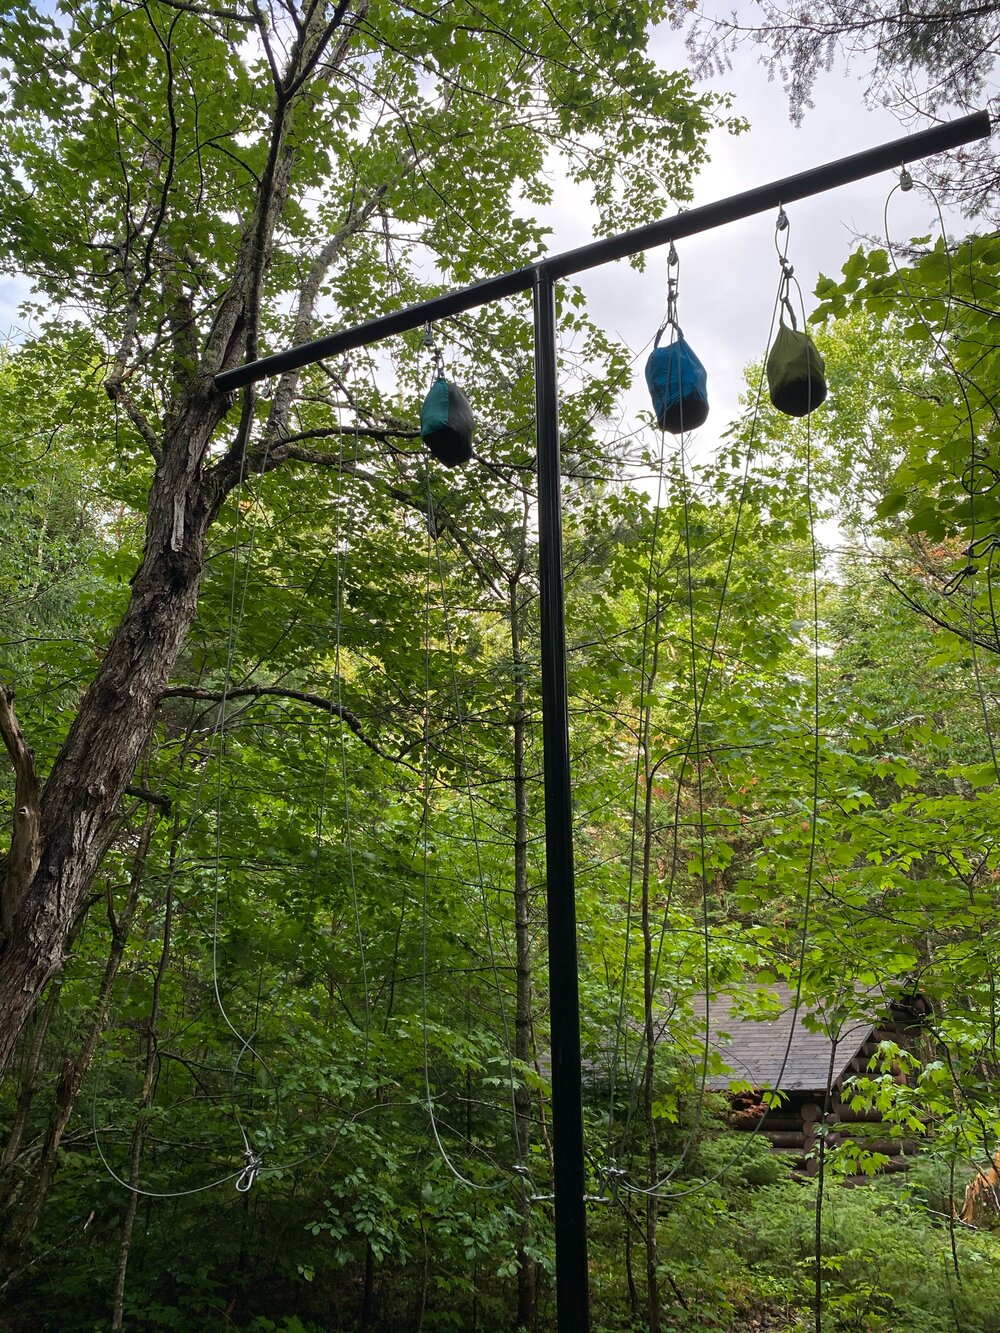 Bear wires - best to keep food out of reach, more for tiny squirrel bears than anything else.